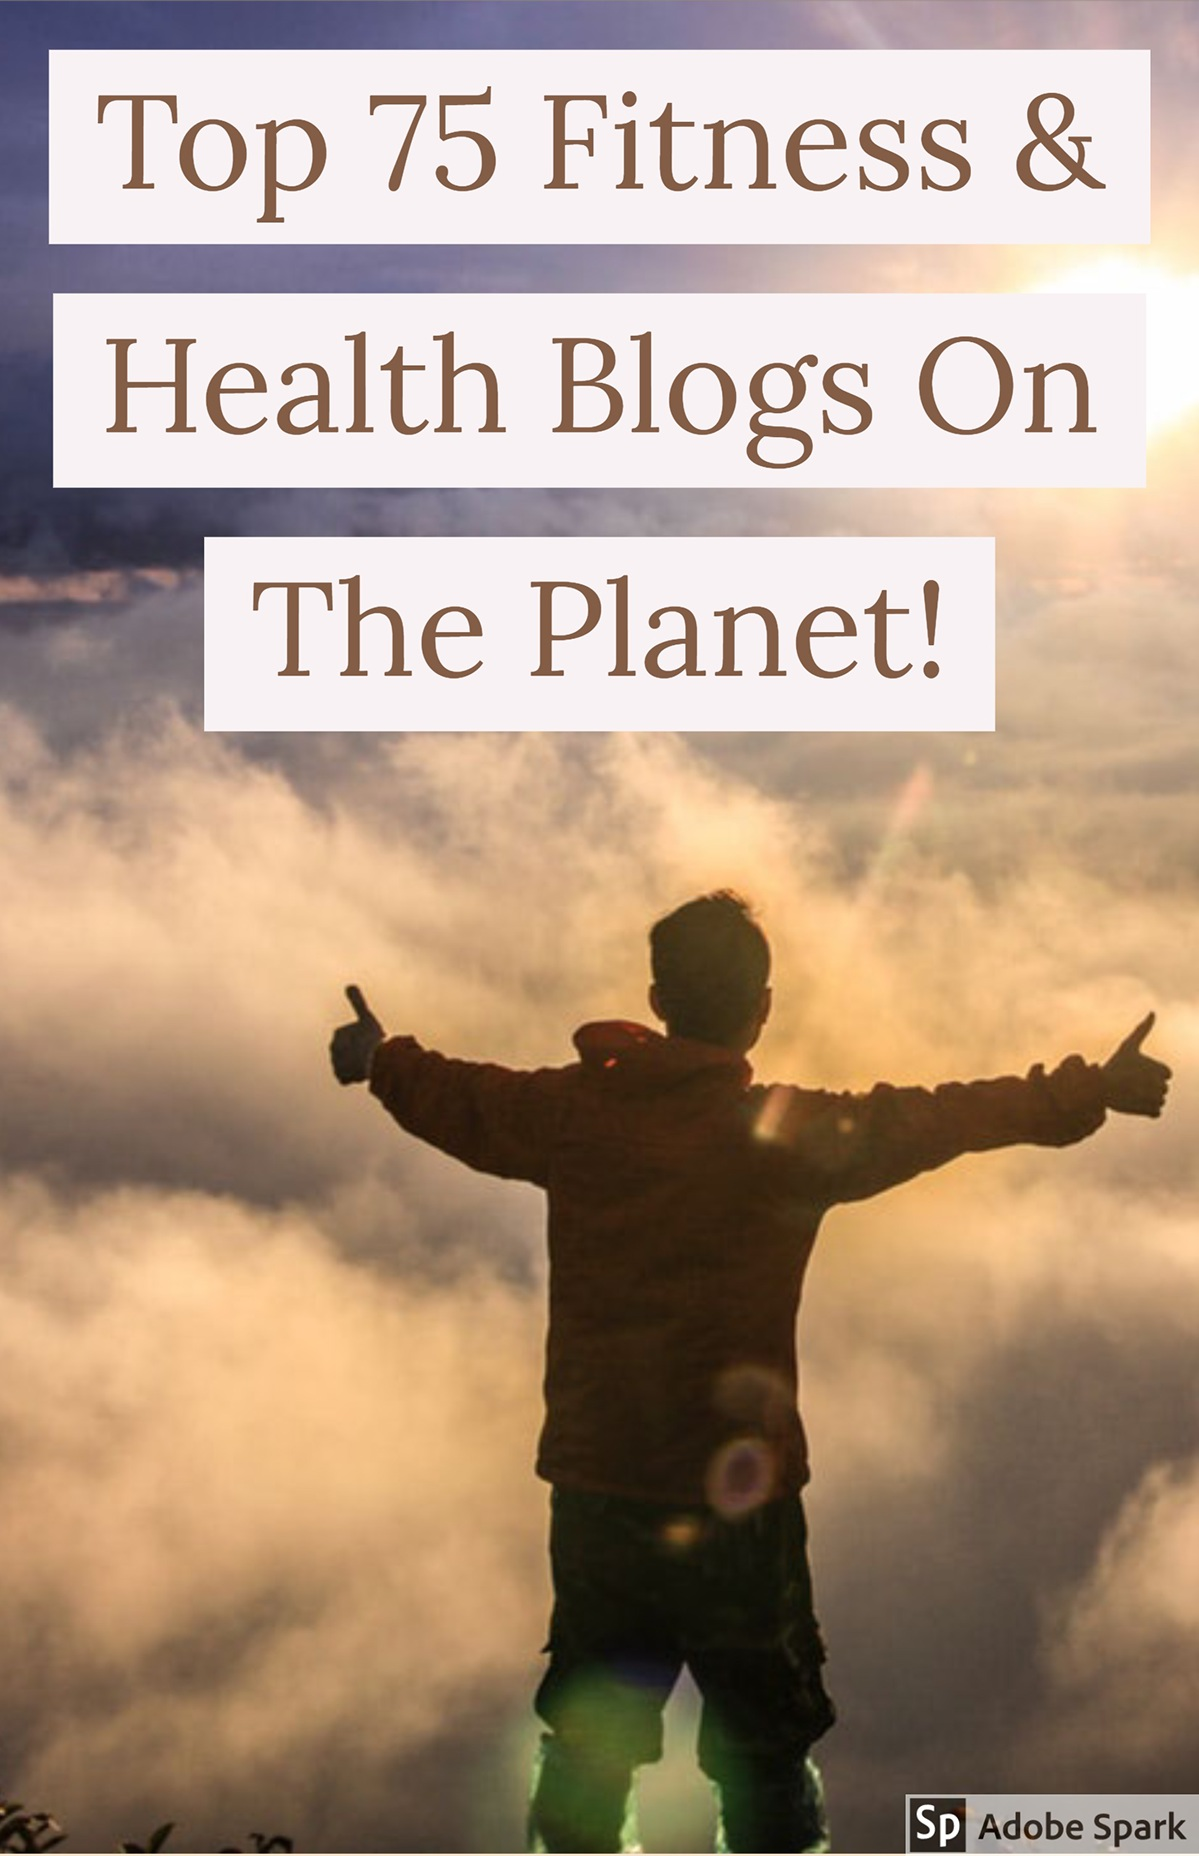 The Top 75 Must Follow Blogs For Better Health, Fitness and